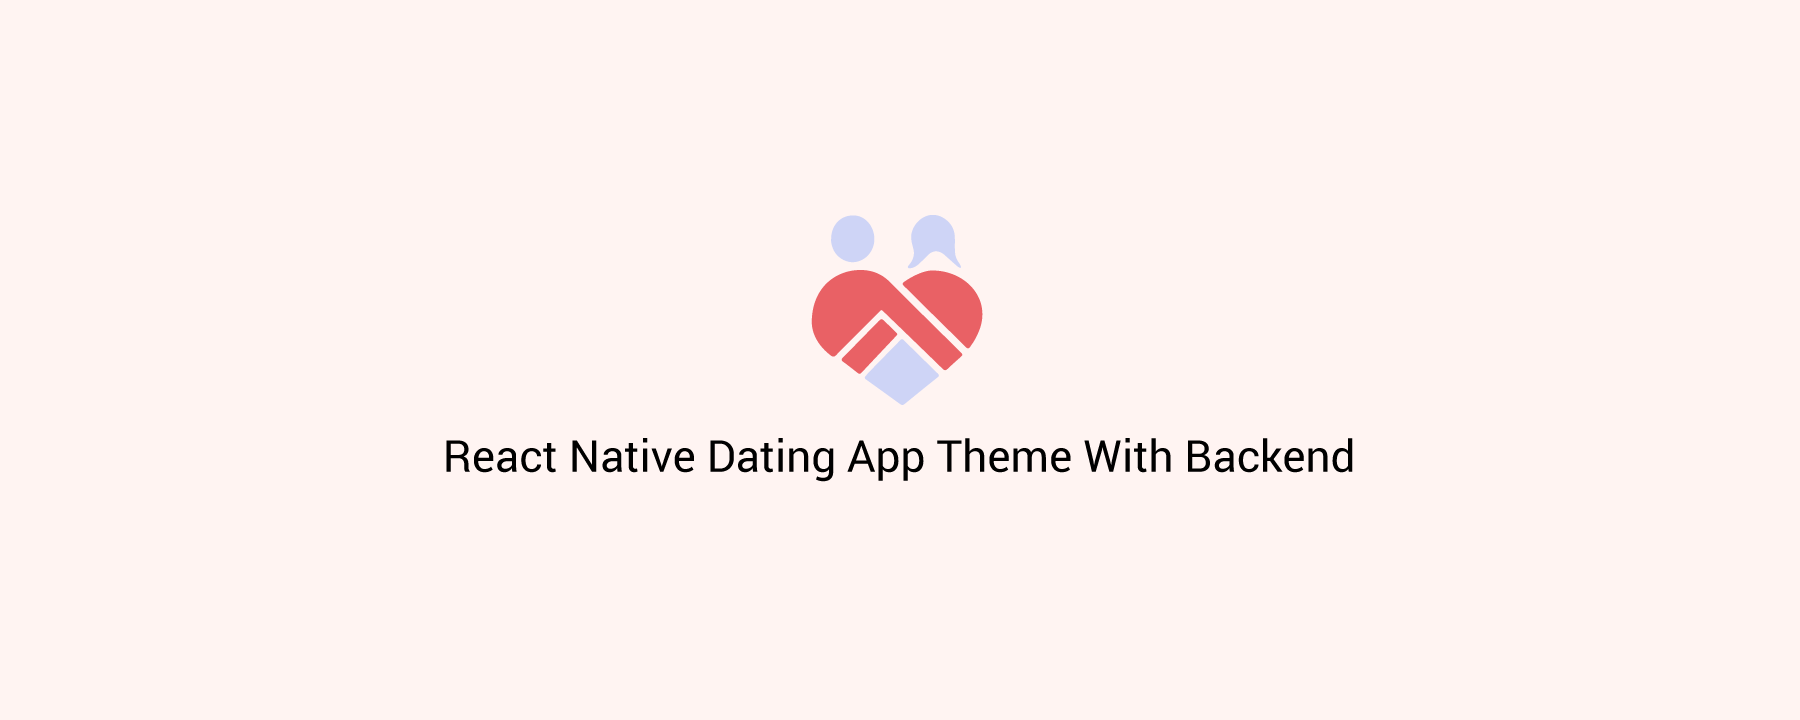 Native dating